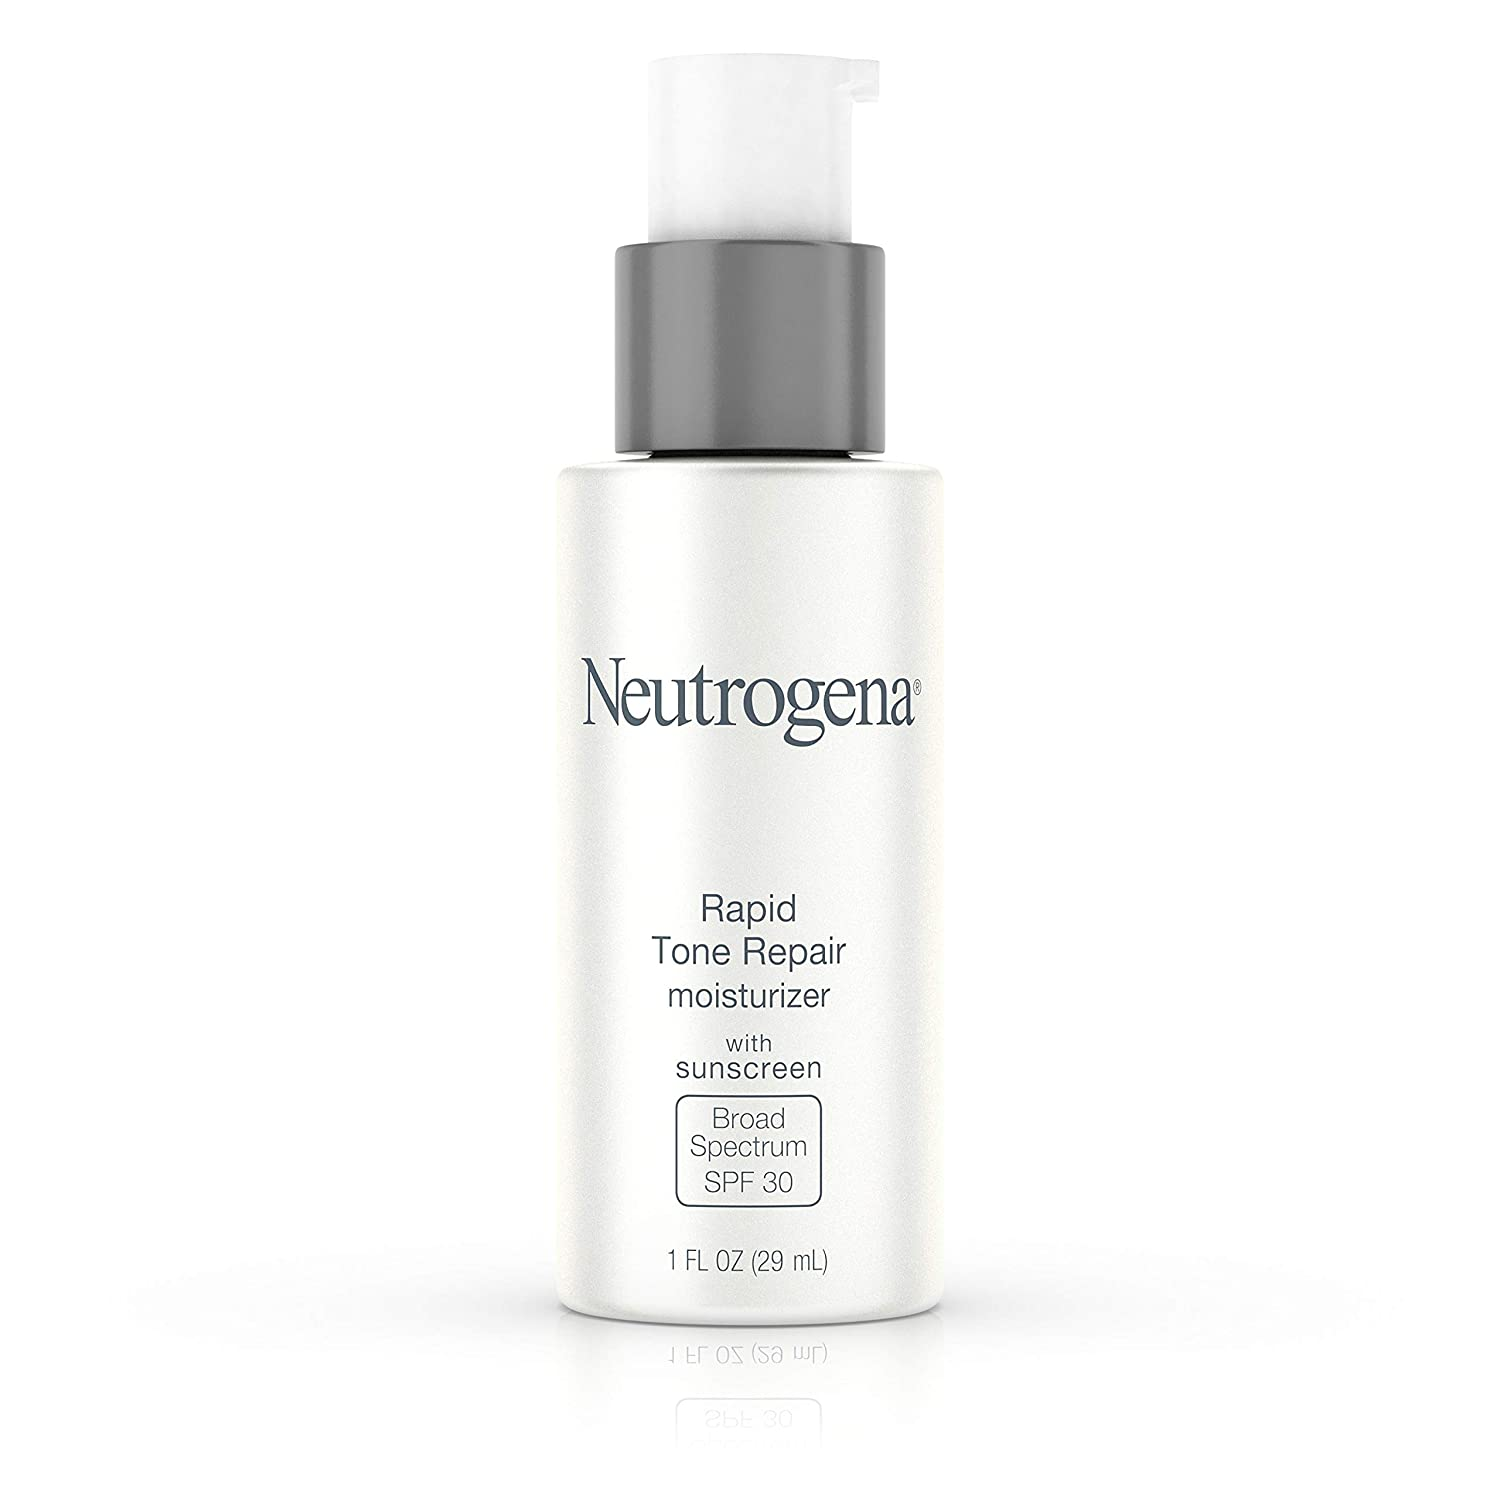 Neutrogena Rapid Tone Repair Face Moisturizer with Retinol SA, Vitamin C, Hyaluronic Acid and SPF 30 Sunscreen, Tone-Evening & Brightening Retinol Facial Moisturizer Cream, 1 fl. oz